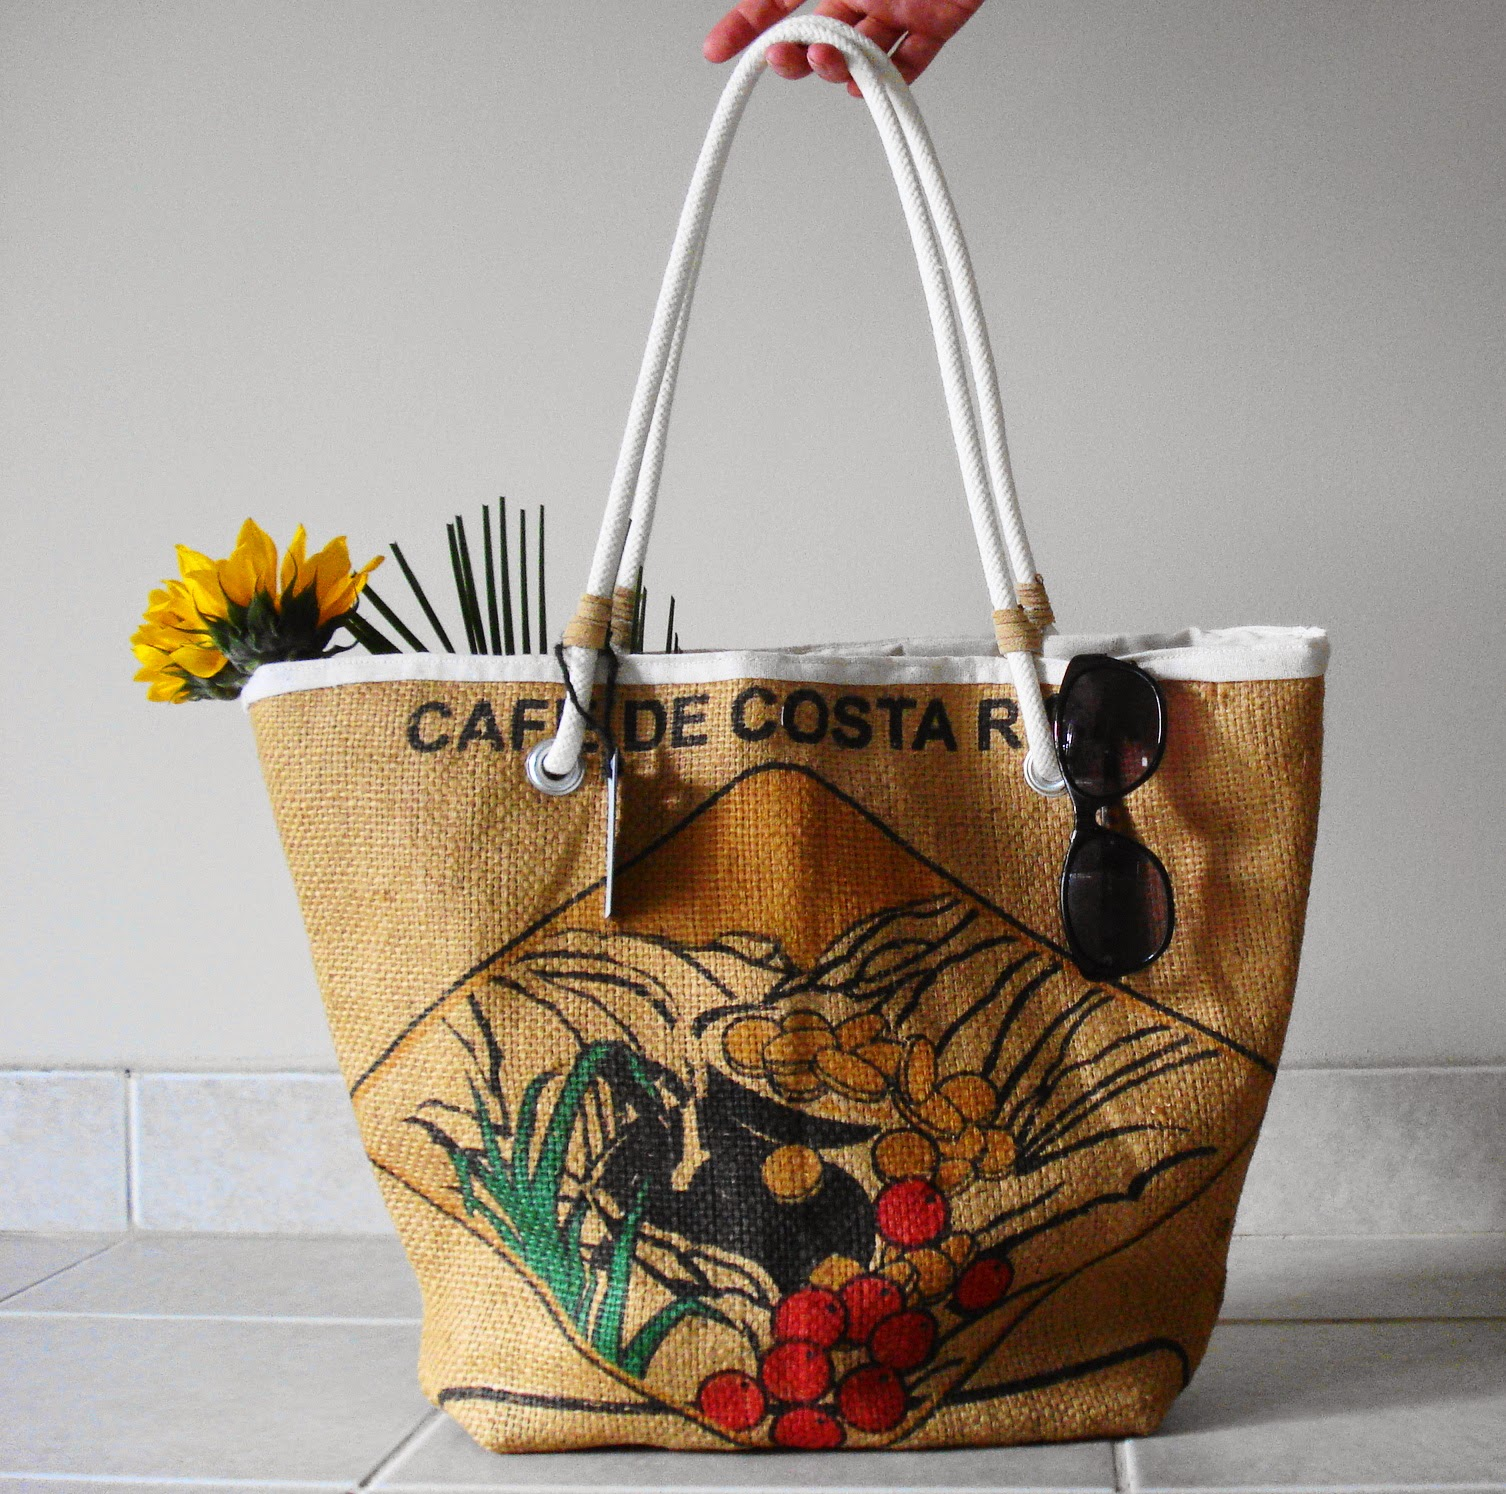 Costa Rica beach bag - Lina and Vi - plymouth MI - linaaandvi.blogspot.com